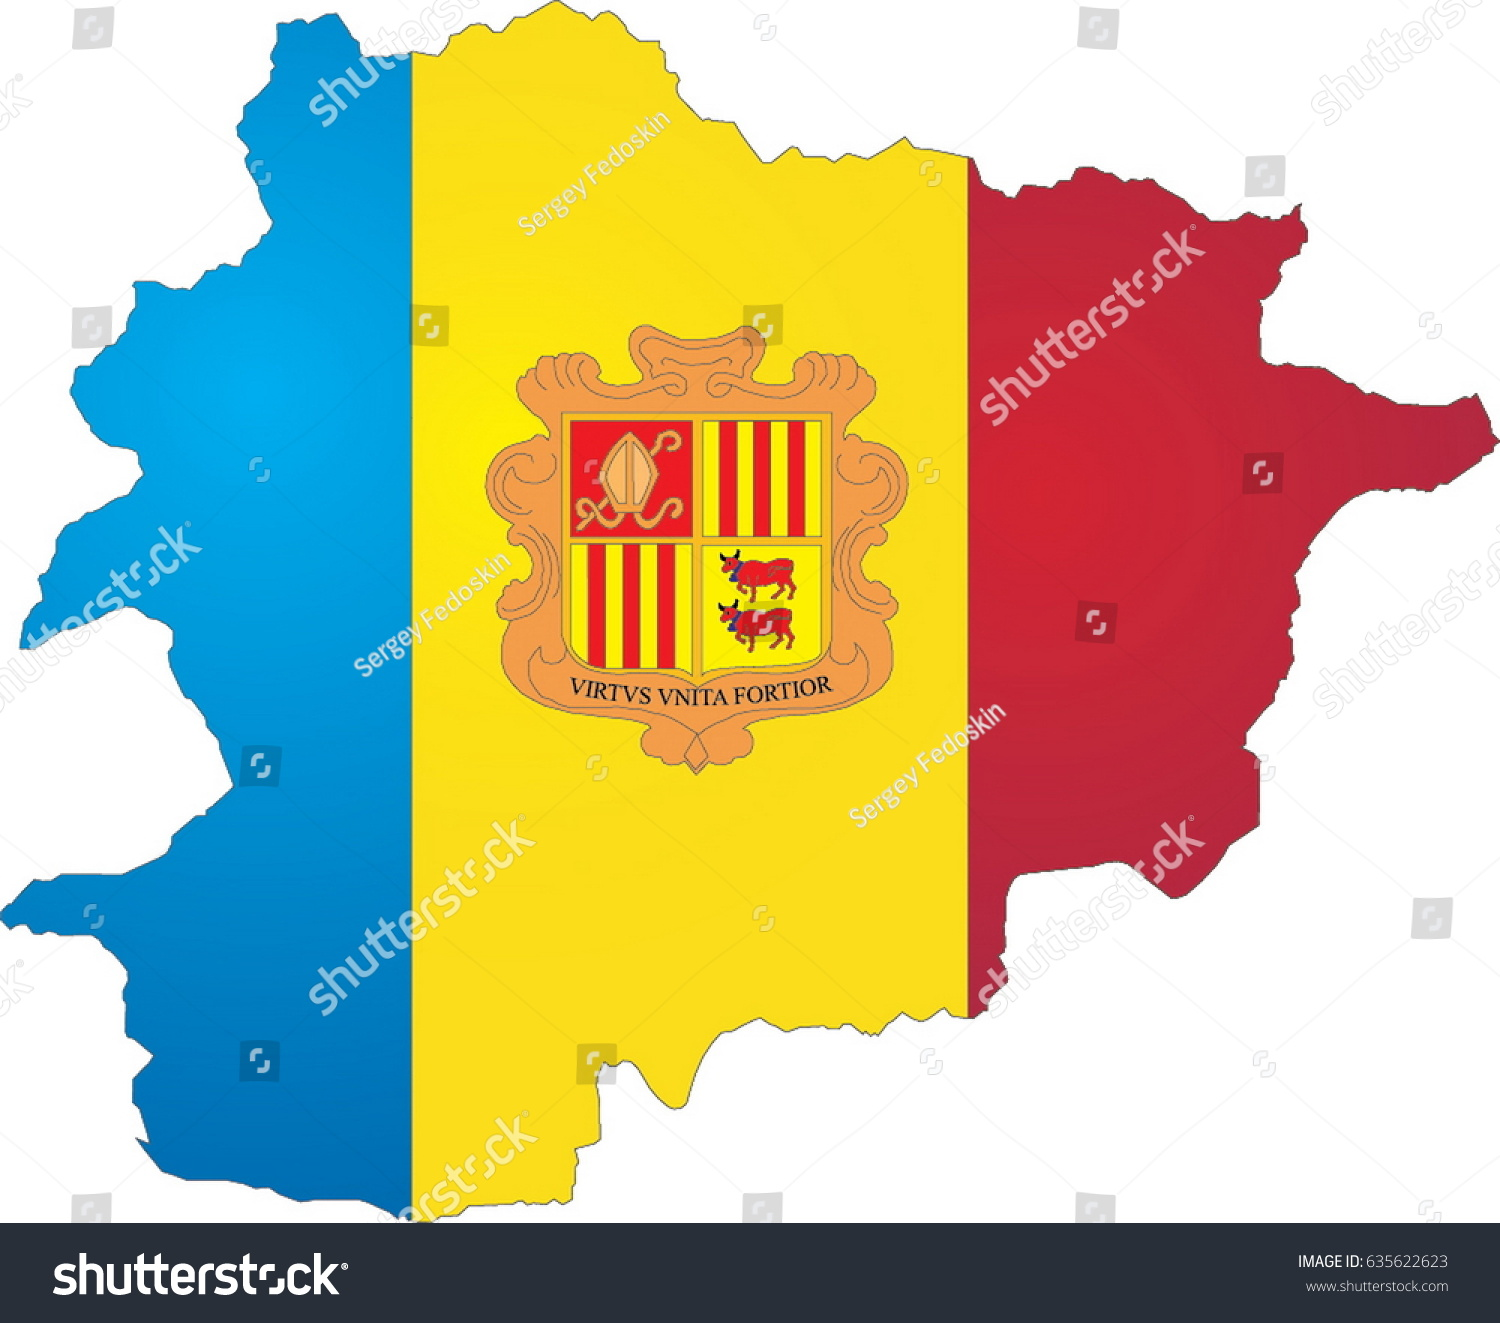 Andorra Map Stock Photo Photo Vector Illustration 635622623